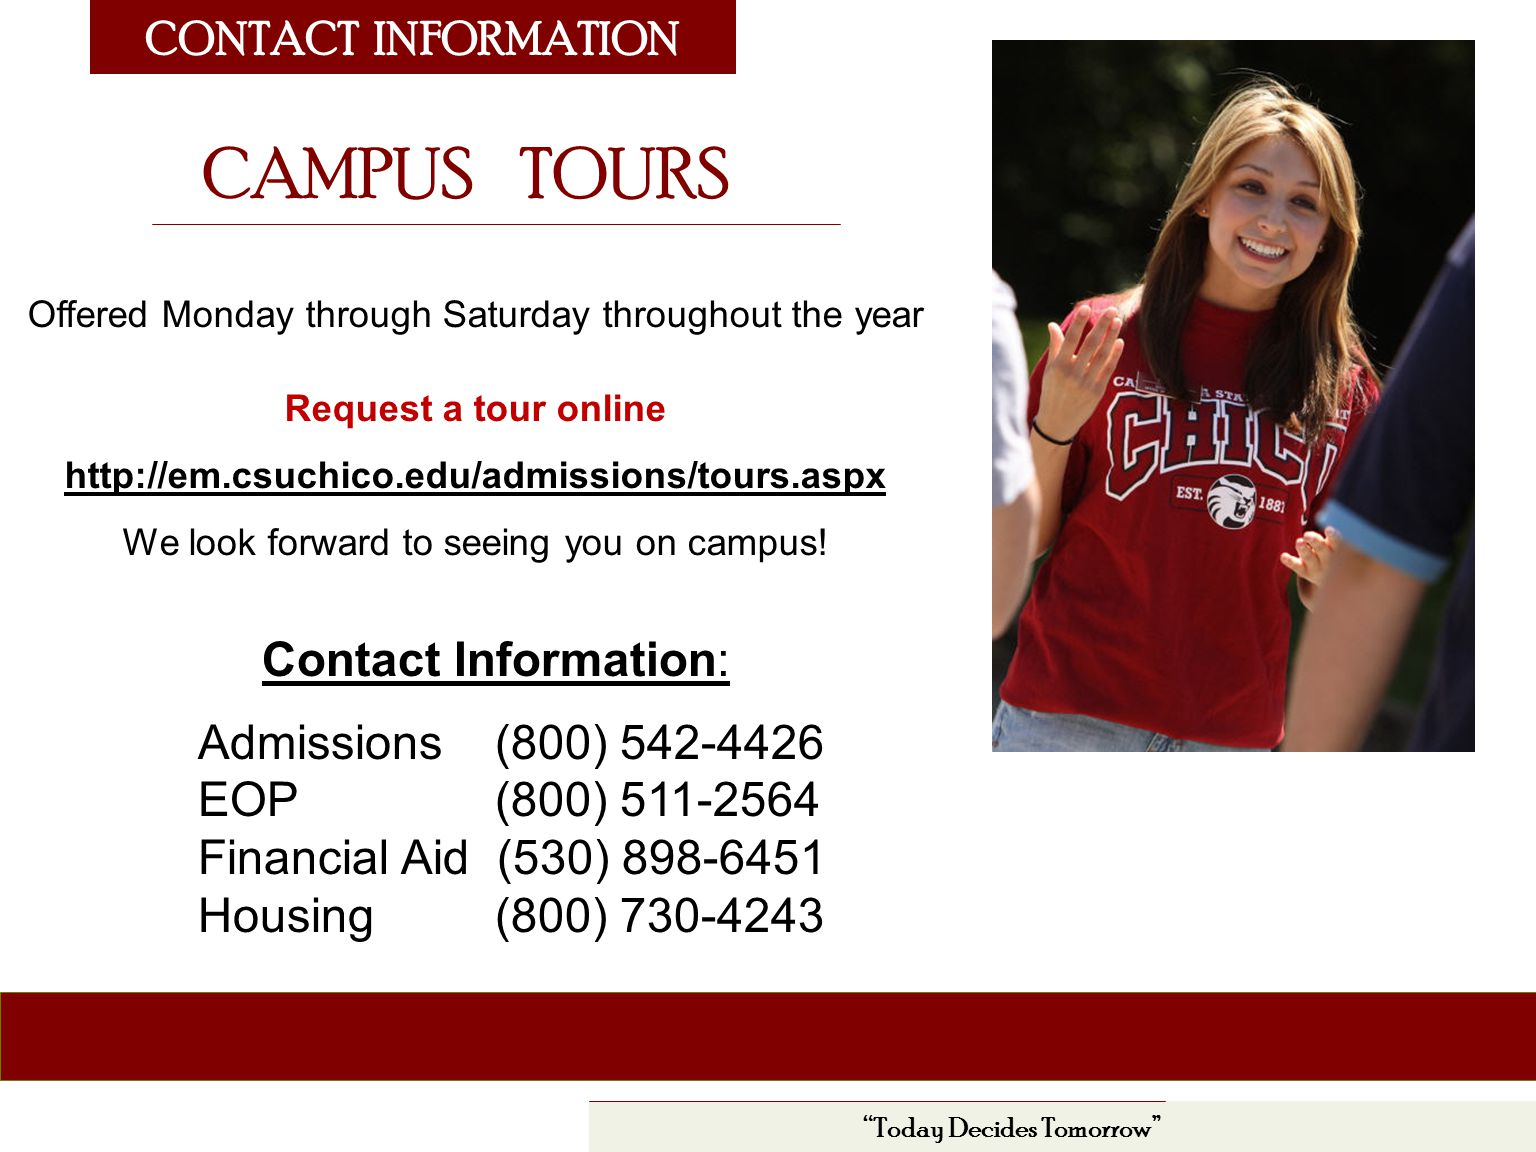 CONTACT INFORMATION Today Decides Tomorrow Contact Information: Admissions (800) EOP (800) Financial Aid (530) Housing (800) CAMPUS TOURS Offered Monday through Saturday throughout the year Request a tour online   We look forward to seeing you on campus!